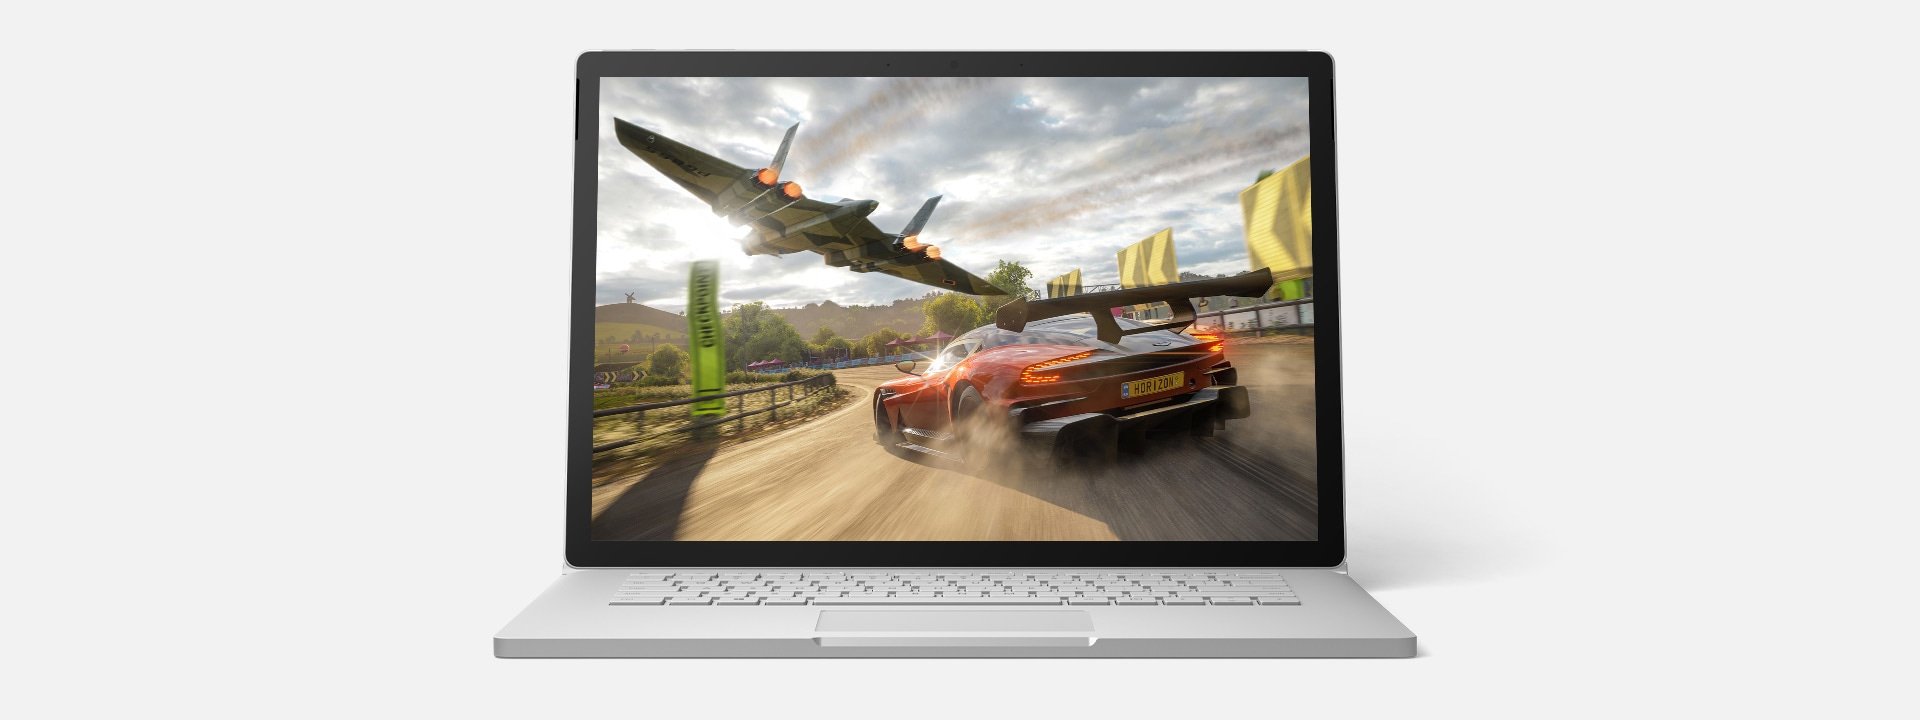 Surface Book 3 running an Xbox game